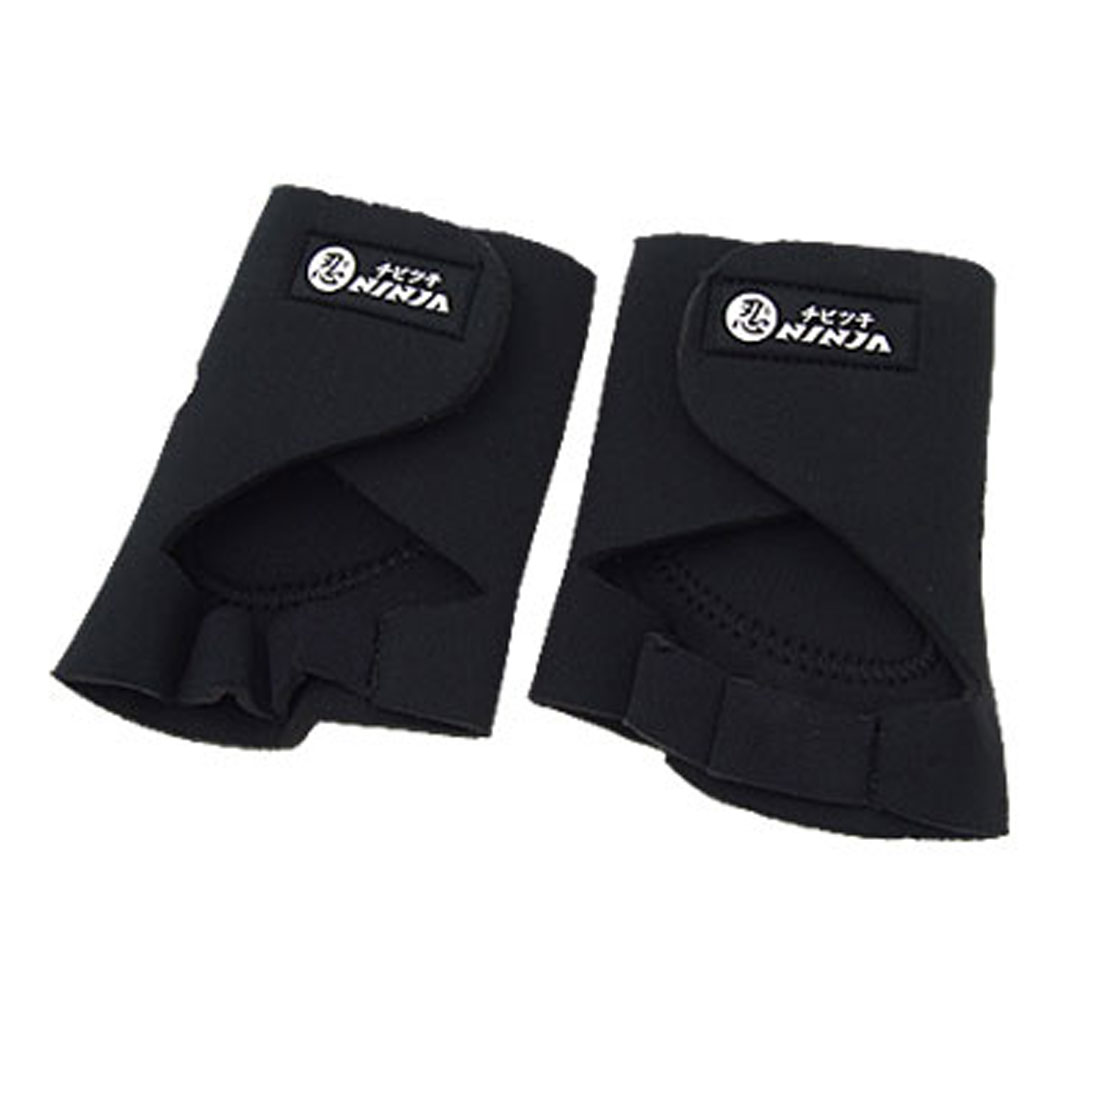 Sports Training Cycling Half Finger Glove Support Size M